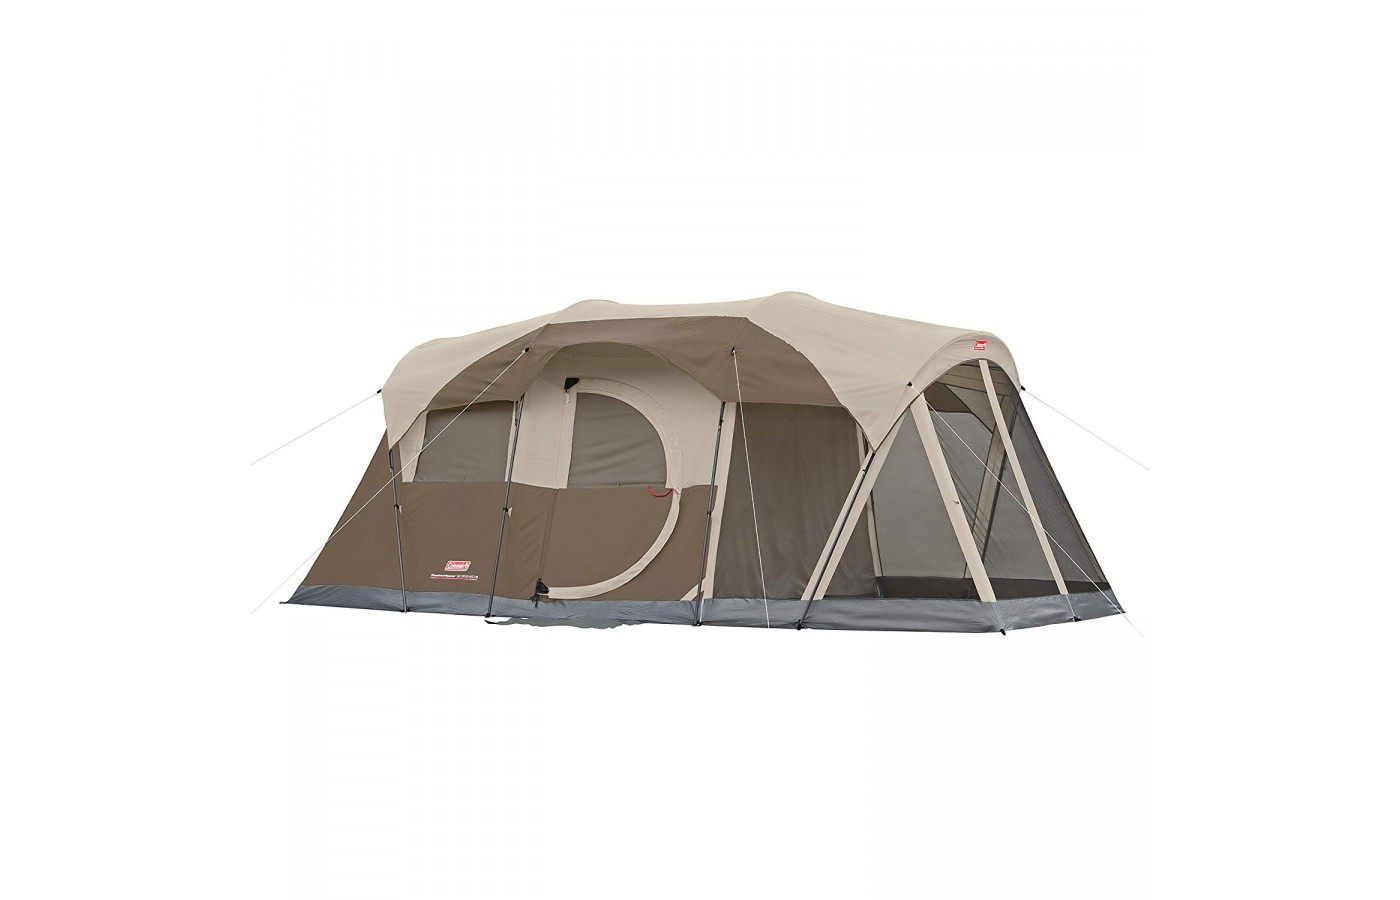 The Coleman Weathermaster has two-rooms and can hold up to 6 campers.